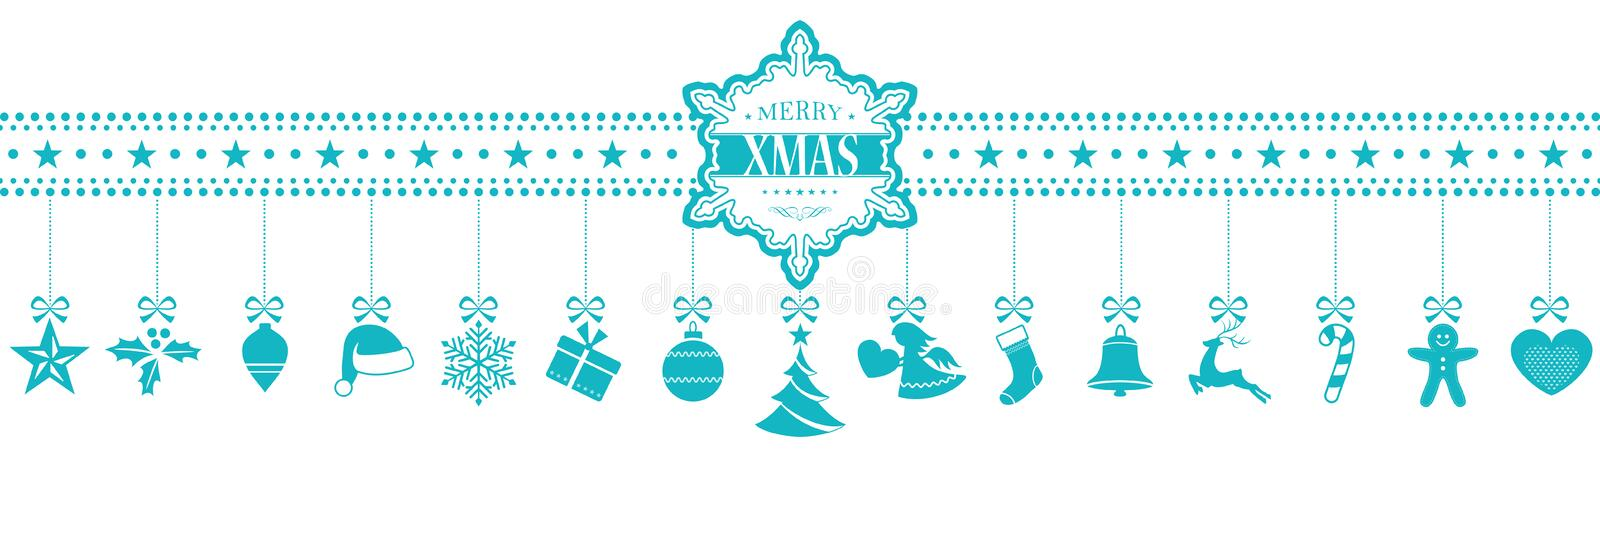 Light blue hanging Christmas ornaments banner with snowflake. Set of 15 Christmas icons, symbols hanging from a horizontal border with a snowflake containing the royalty free illustration